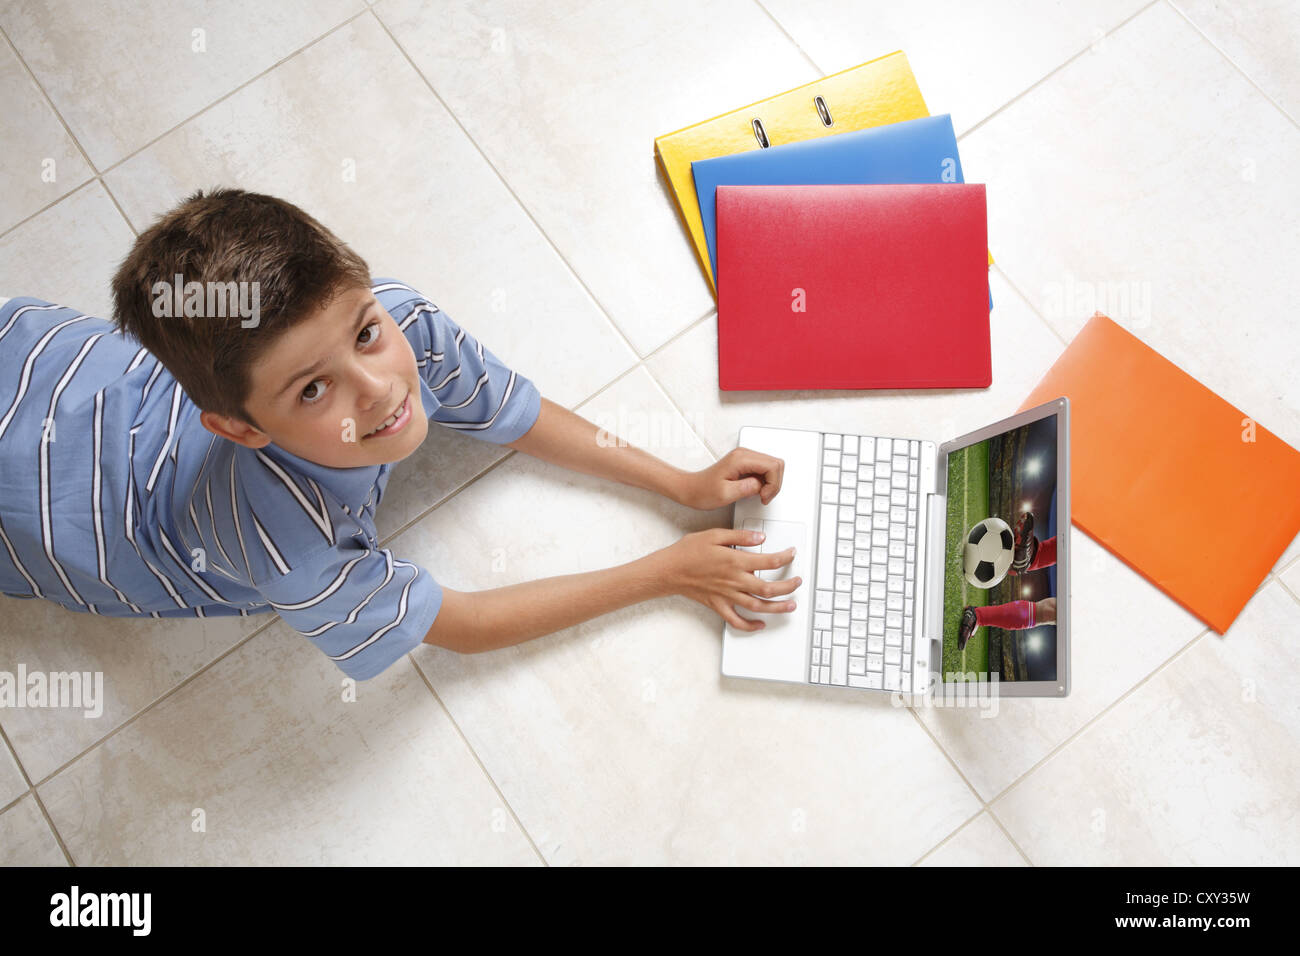 Young looking up while lying on the floor with a notebook, folders, and files - Stock Image